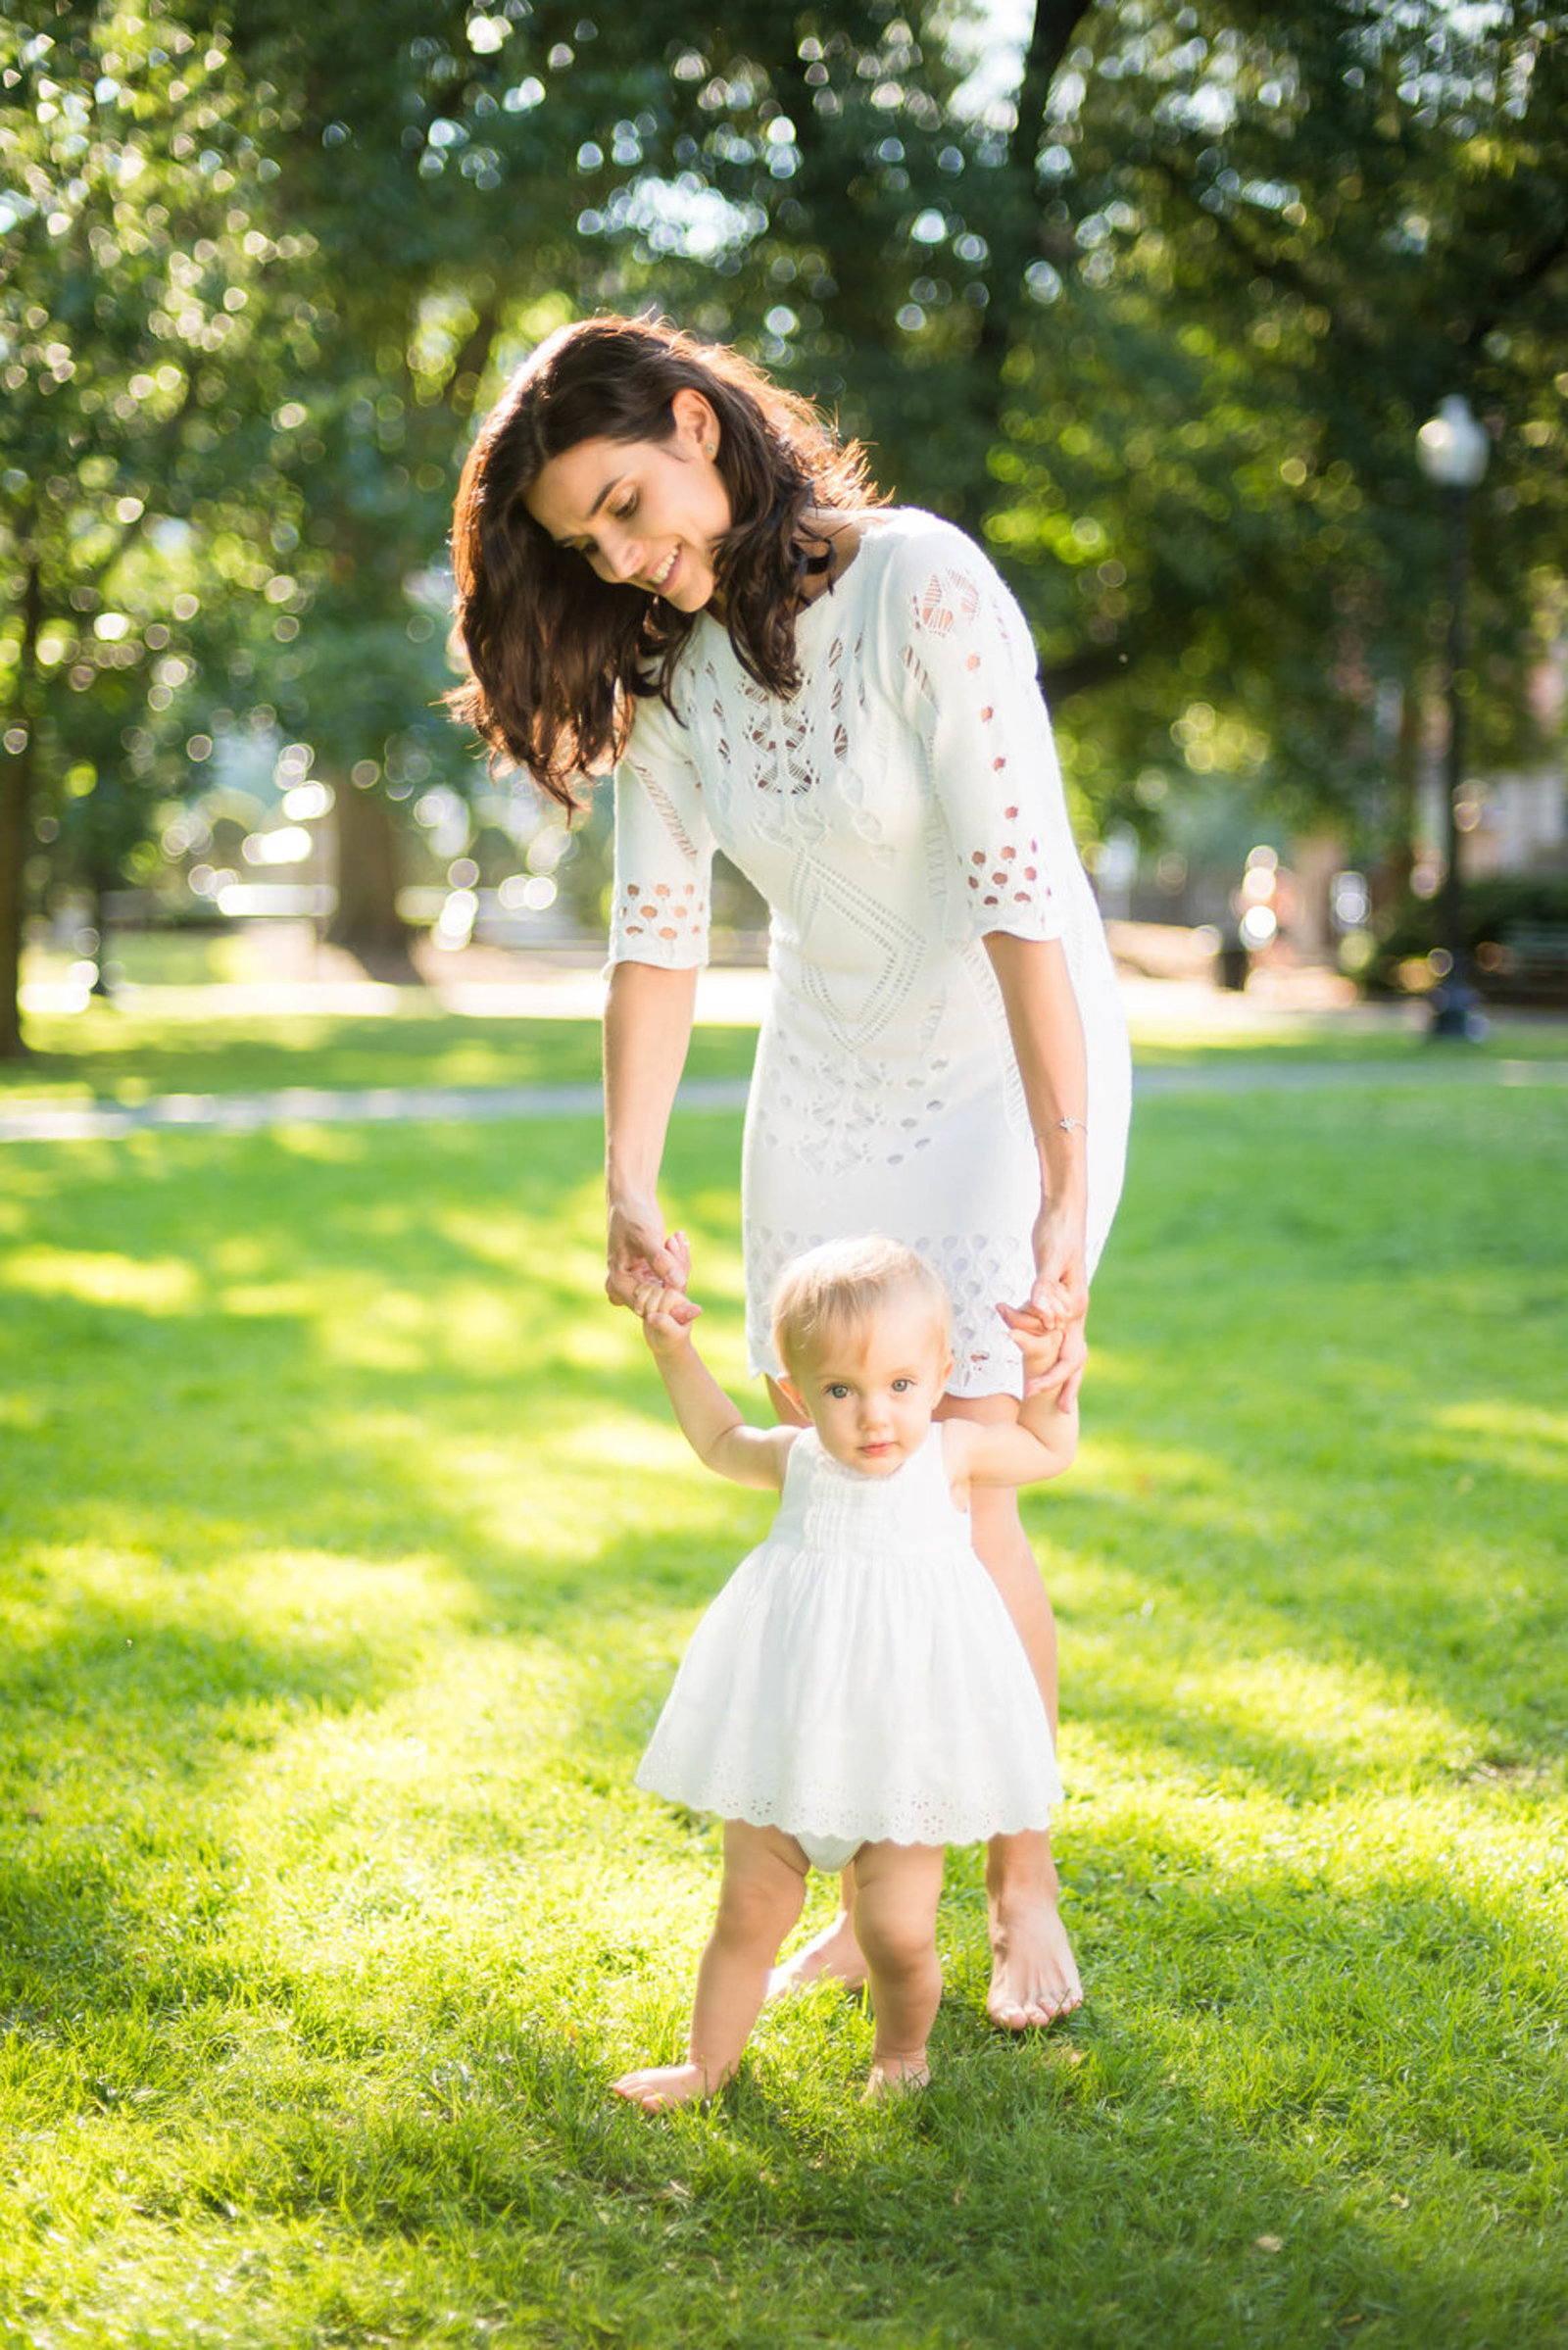 Boston-Family-Photographer-Public-Gardens-Session-13